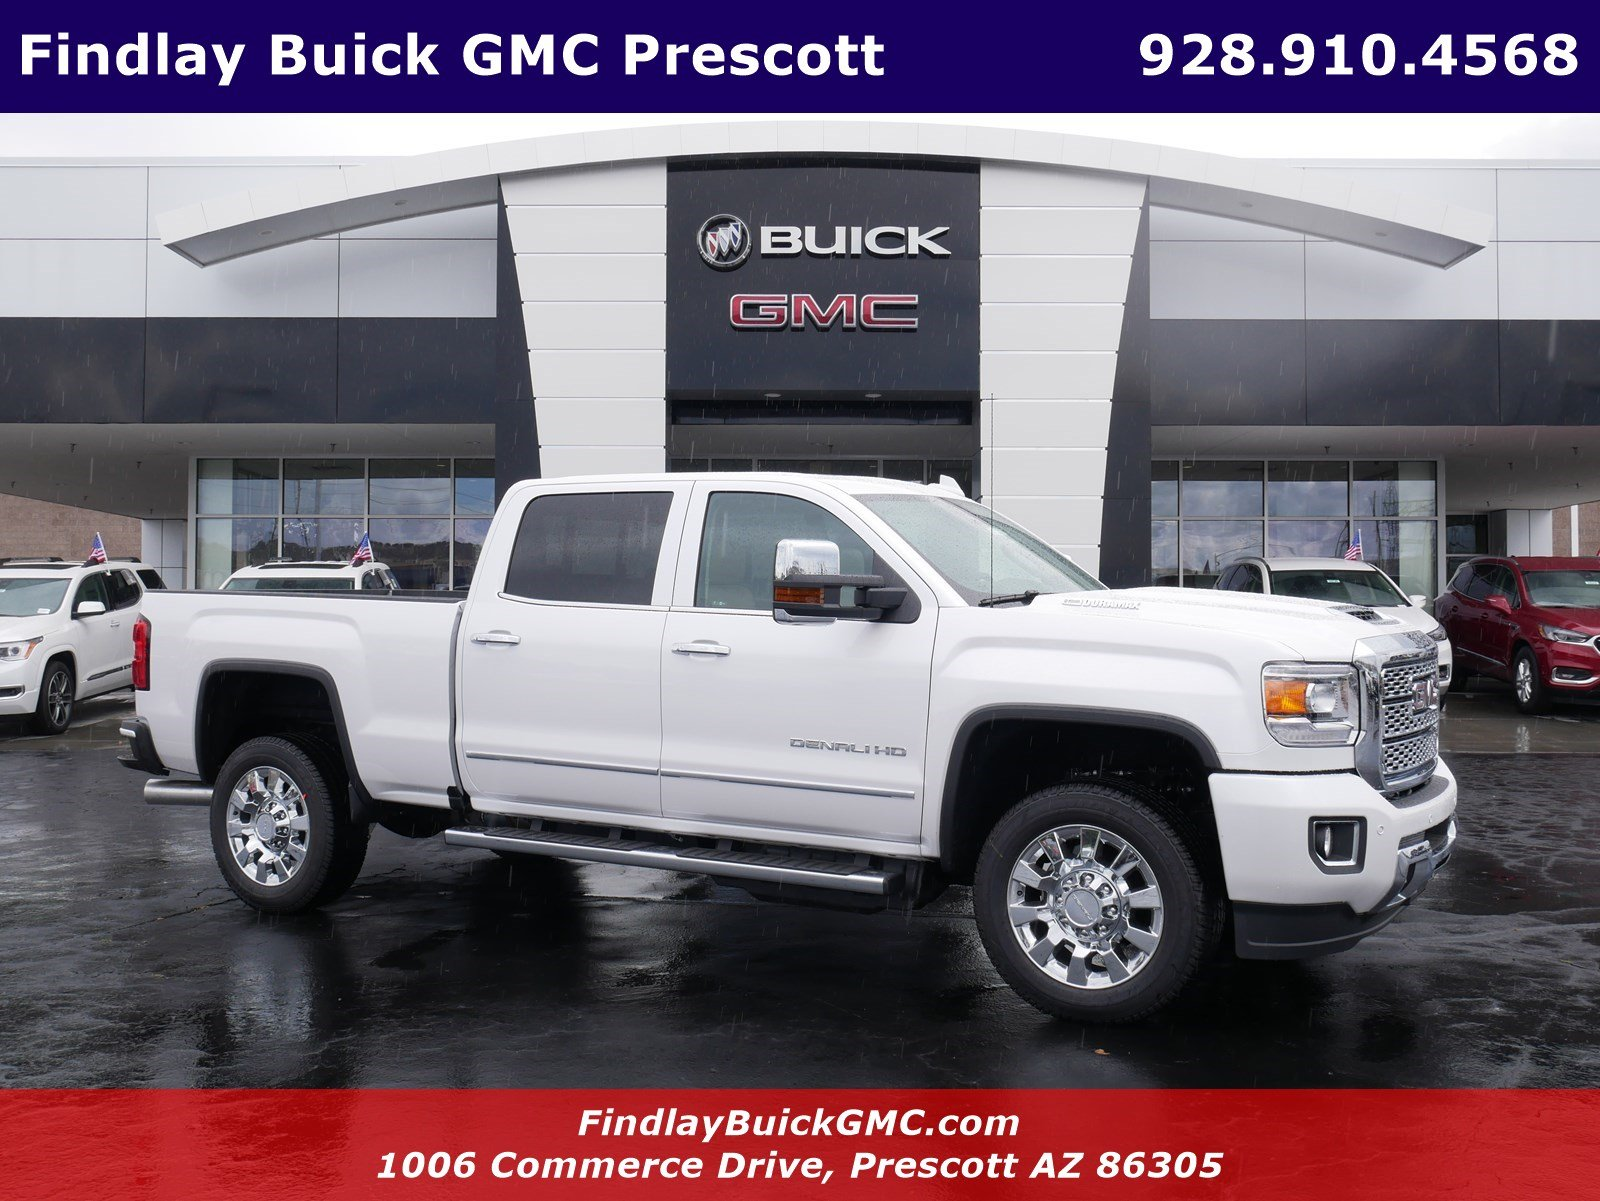 New 2018 Gmc Sierra 2500hd Denali Crew Cab Pickup In G40272 Dual Battery Kit